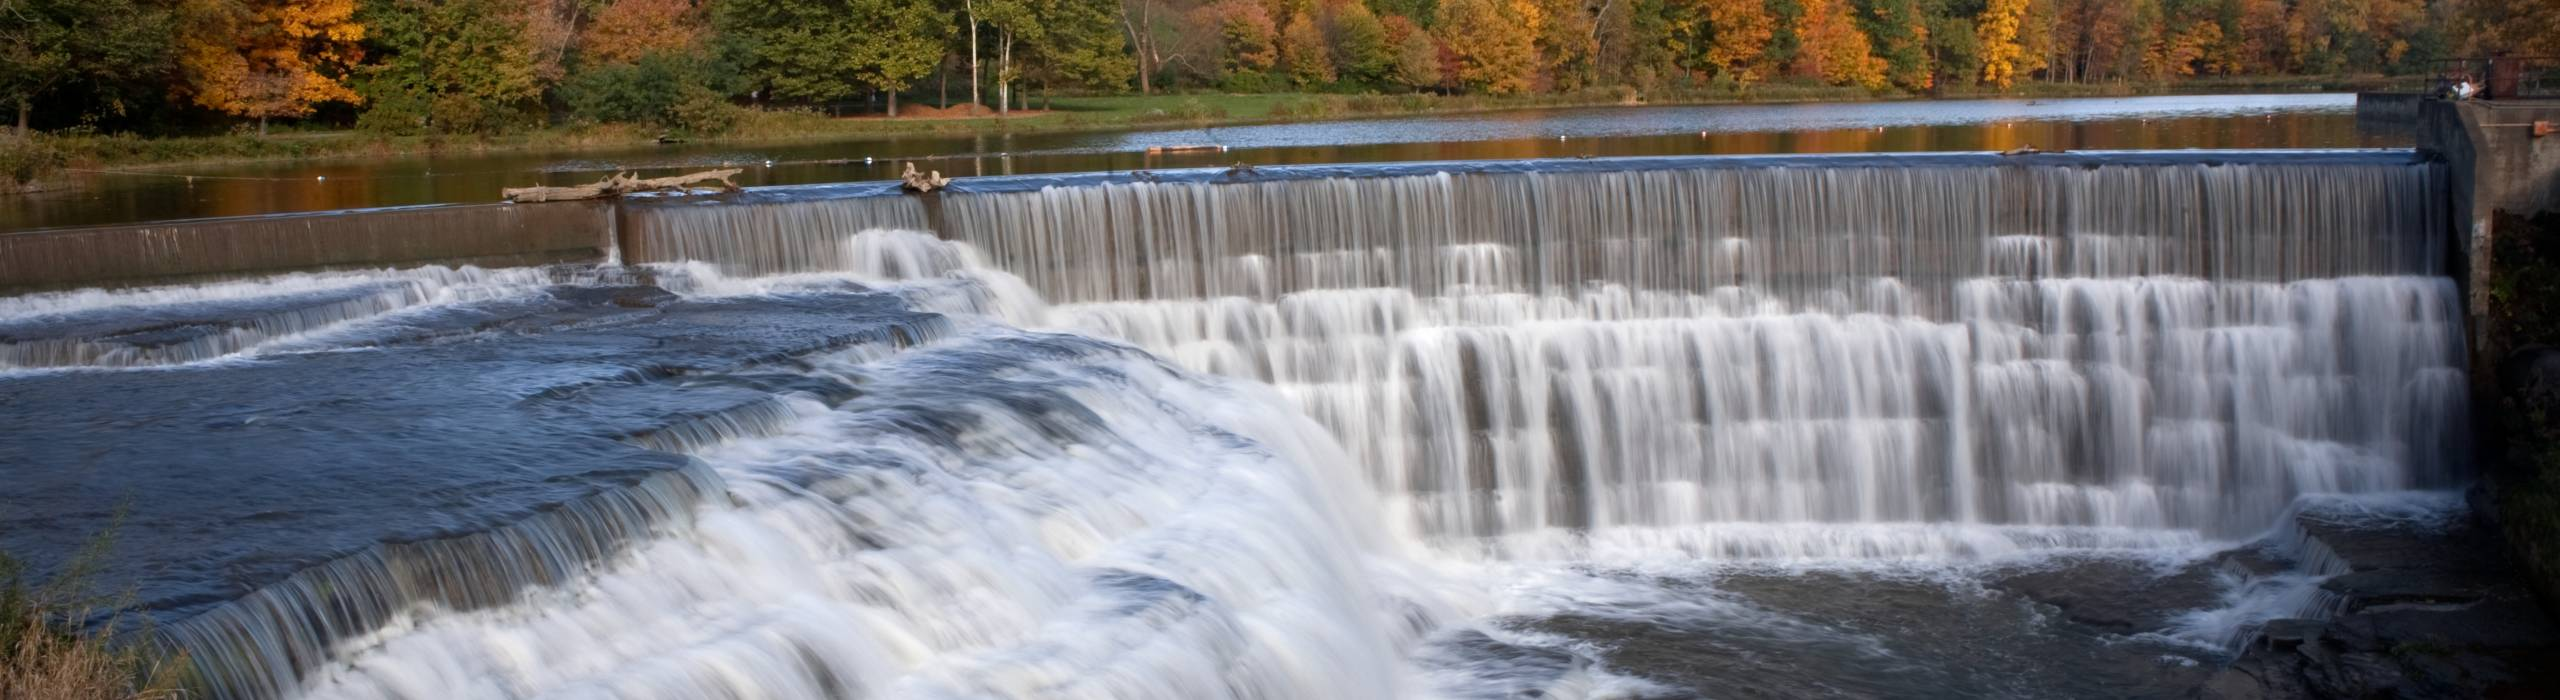 Beebe Lake and Beebe Dam in fall.